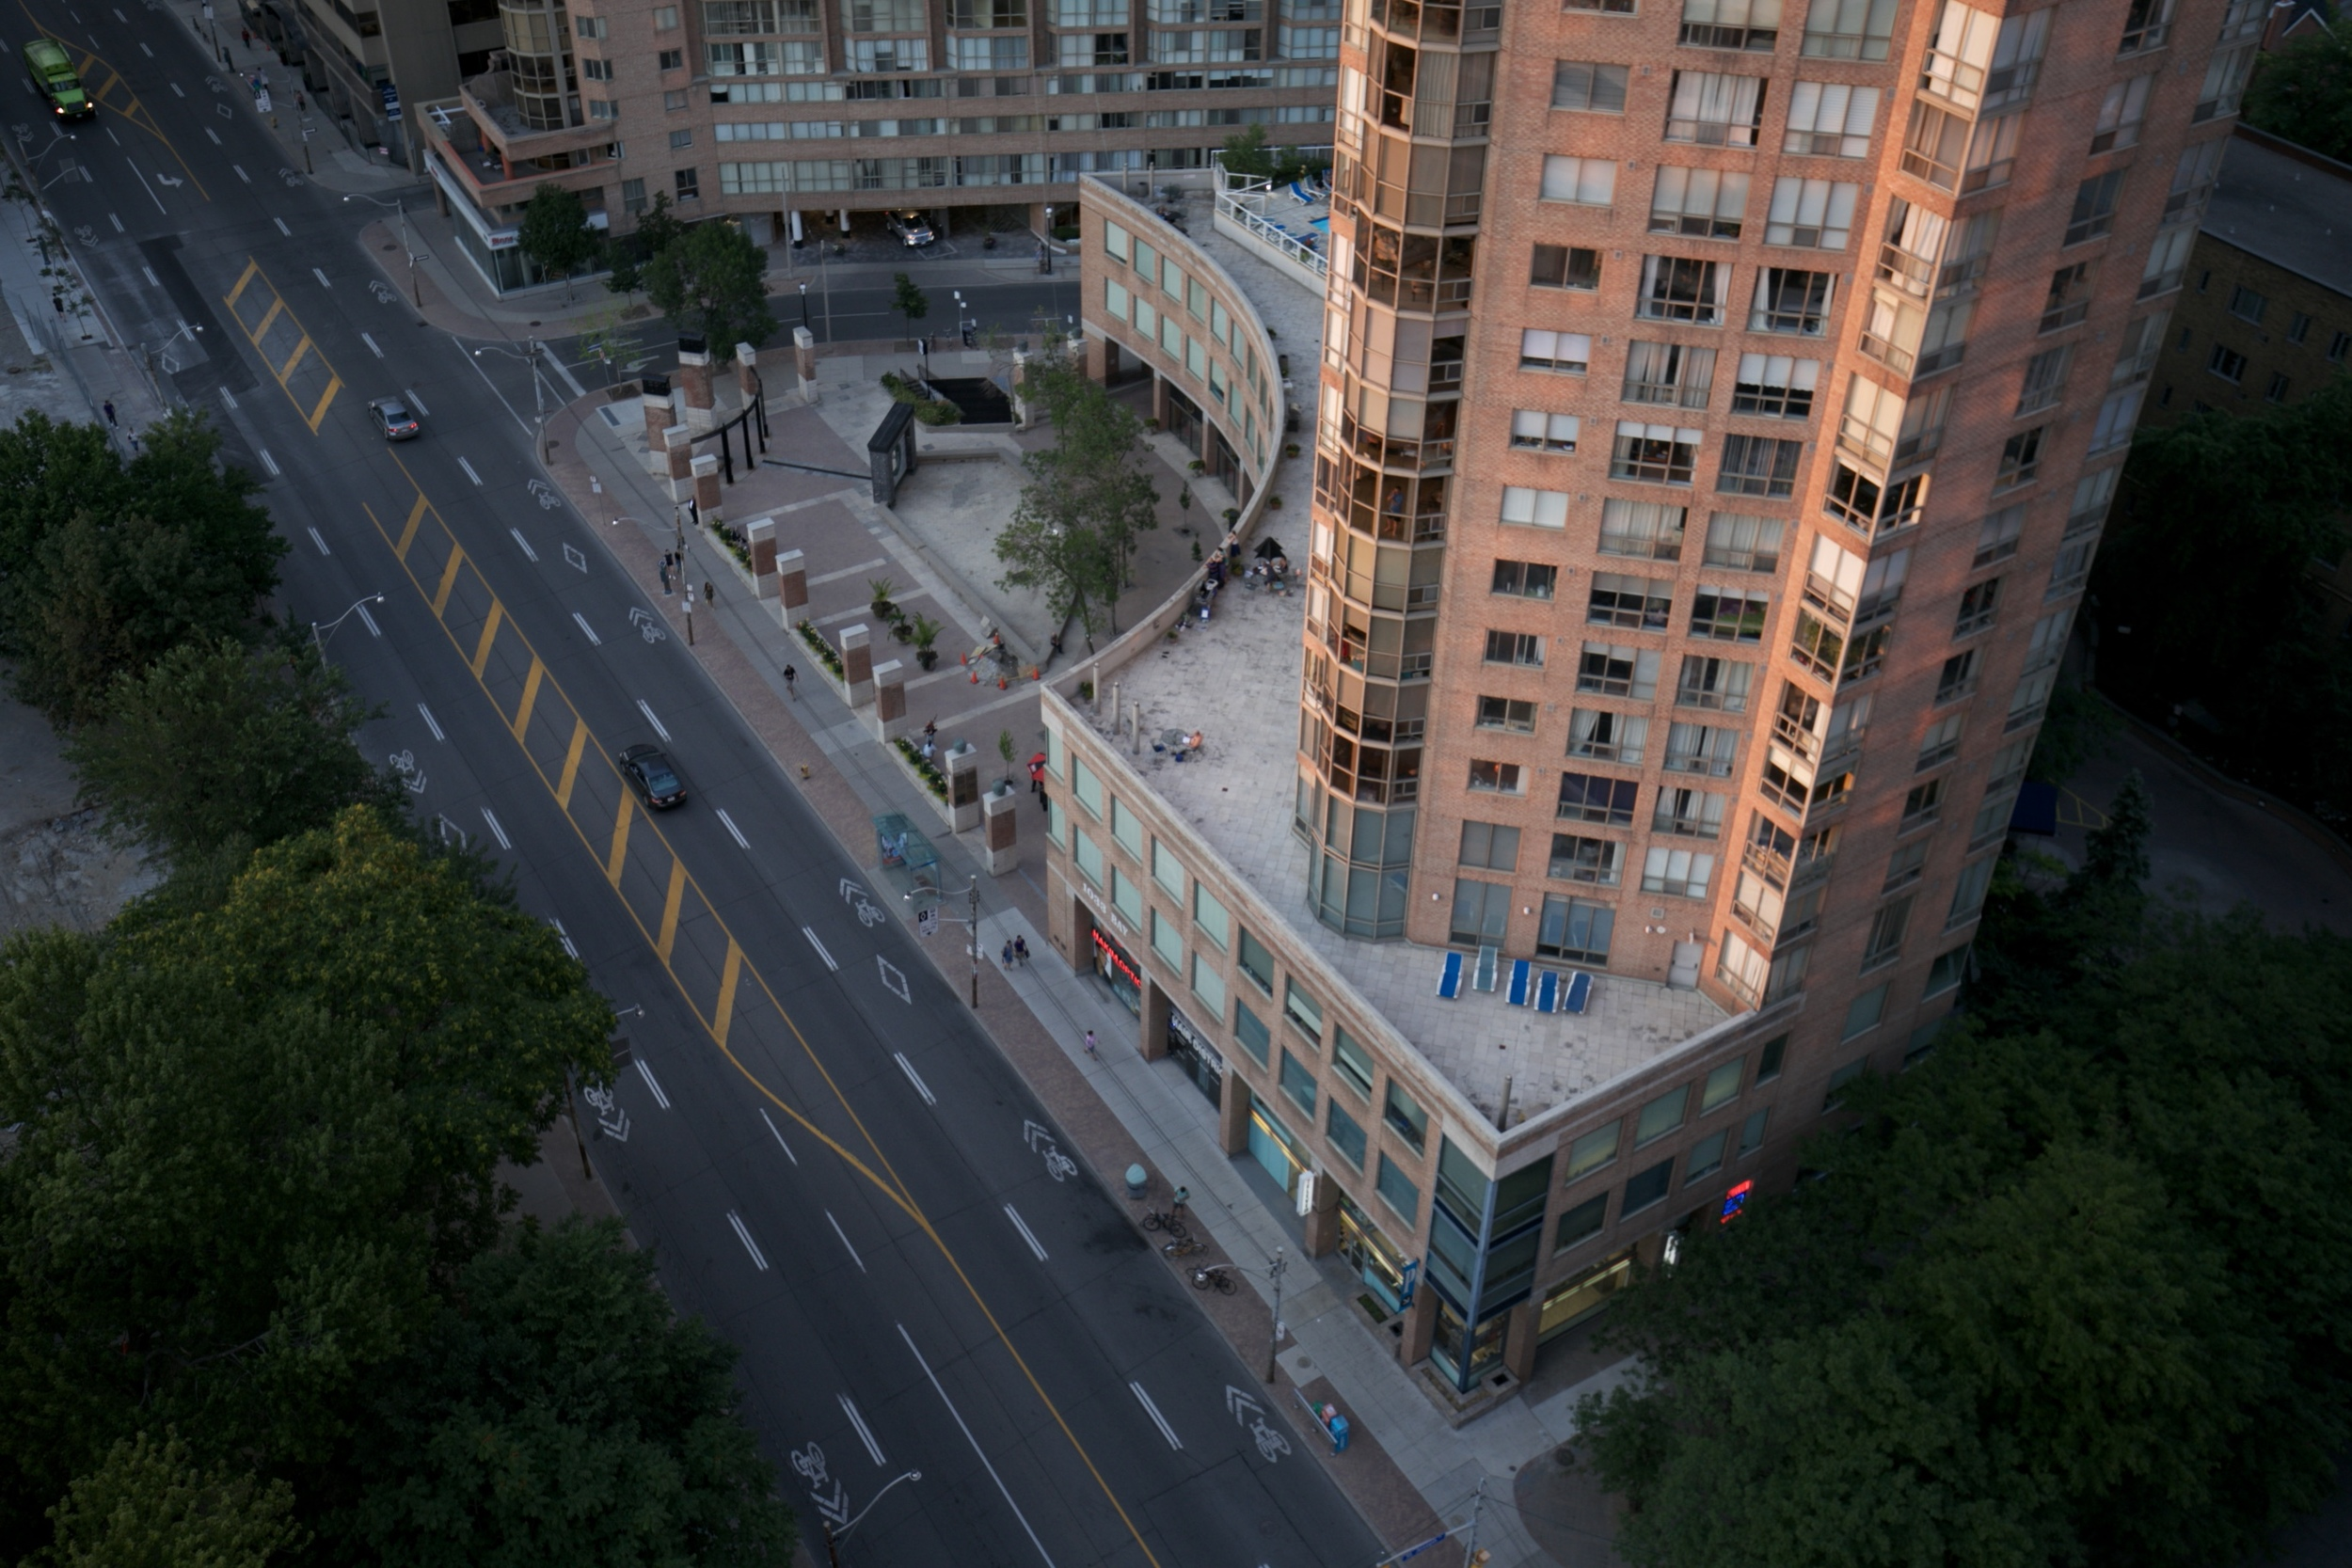 Looking down at the streets from a balcony in Toronto.